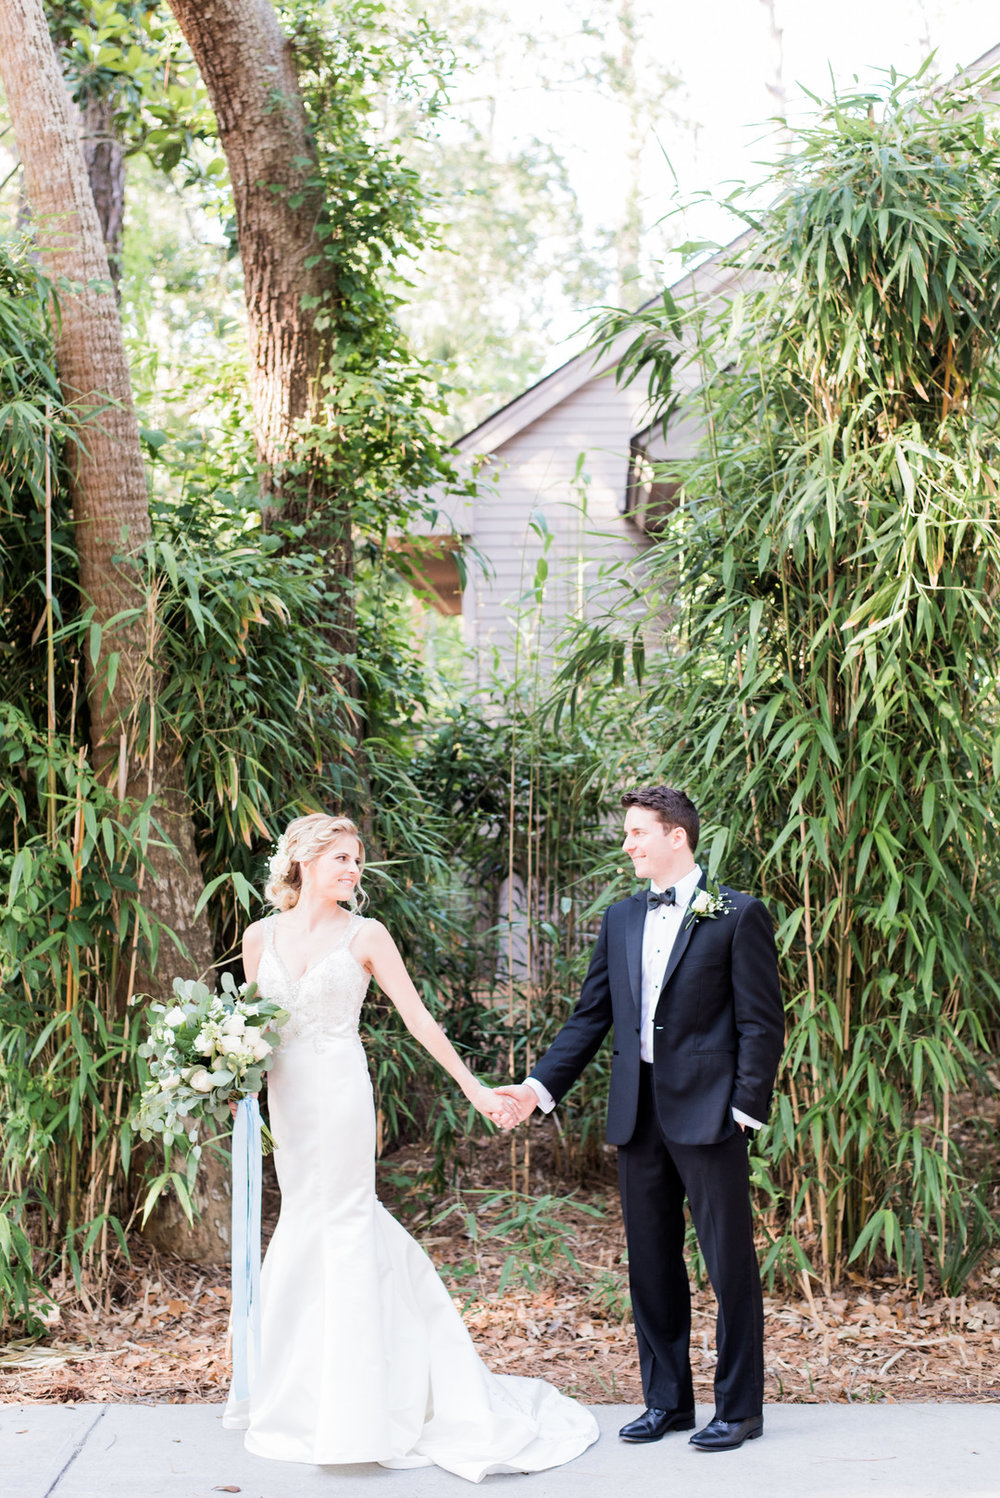 Jessica + Brian: Beach View Wedding at the Dunes House, Hilton Head Island | Palmetto State Weddings